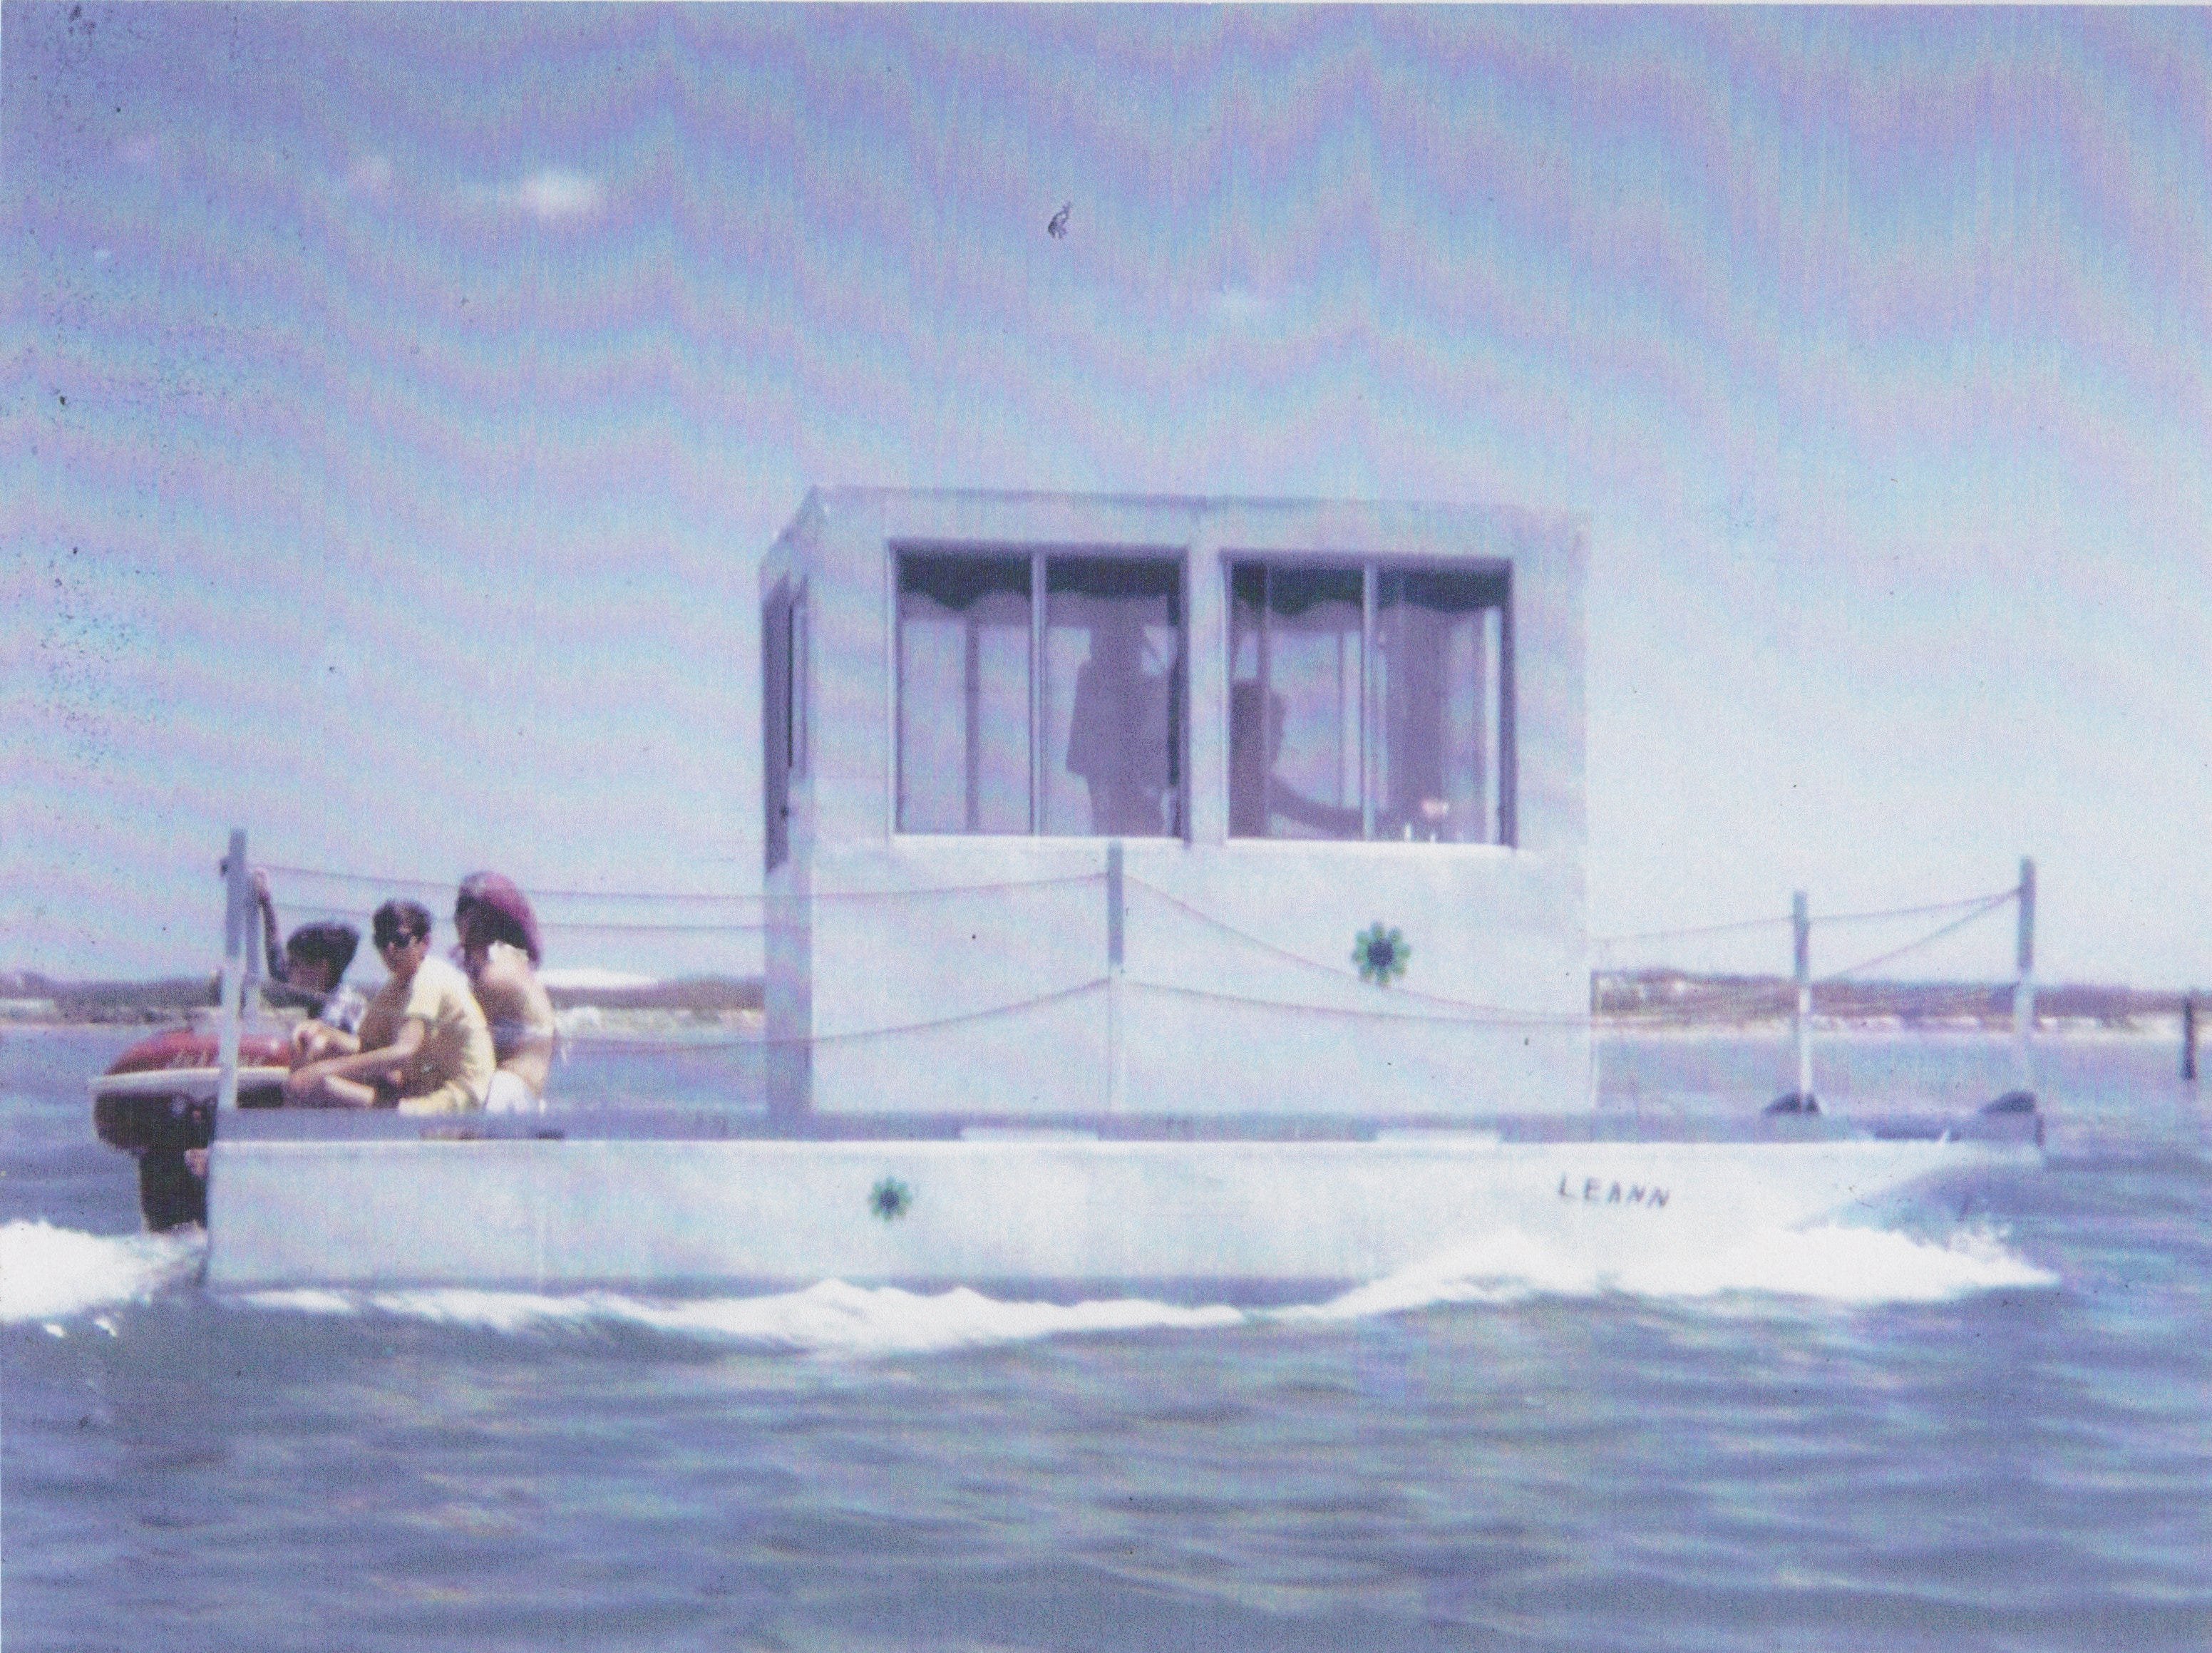 """Tony Joe White built this boat himself, dubbed """"Leann"""" after his wife, while he and his family lived in Corpus Christi in the late 1960s. They spent many hours on Padre Island."""